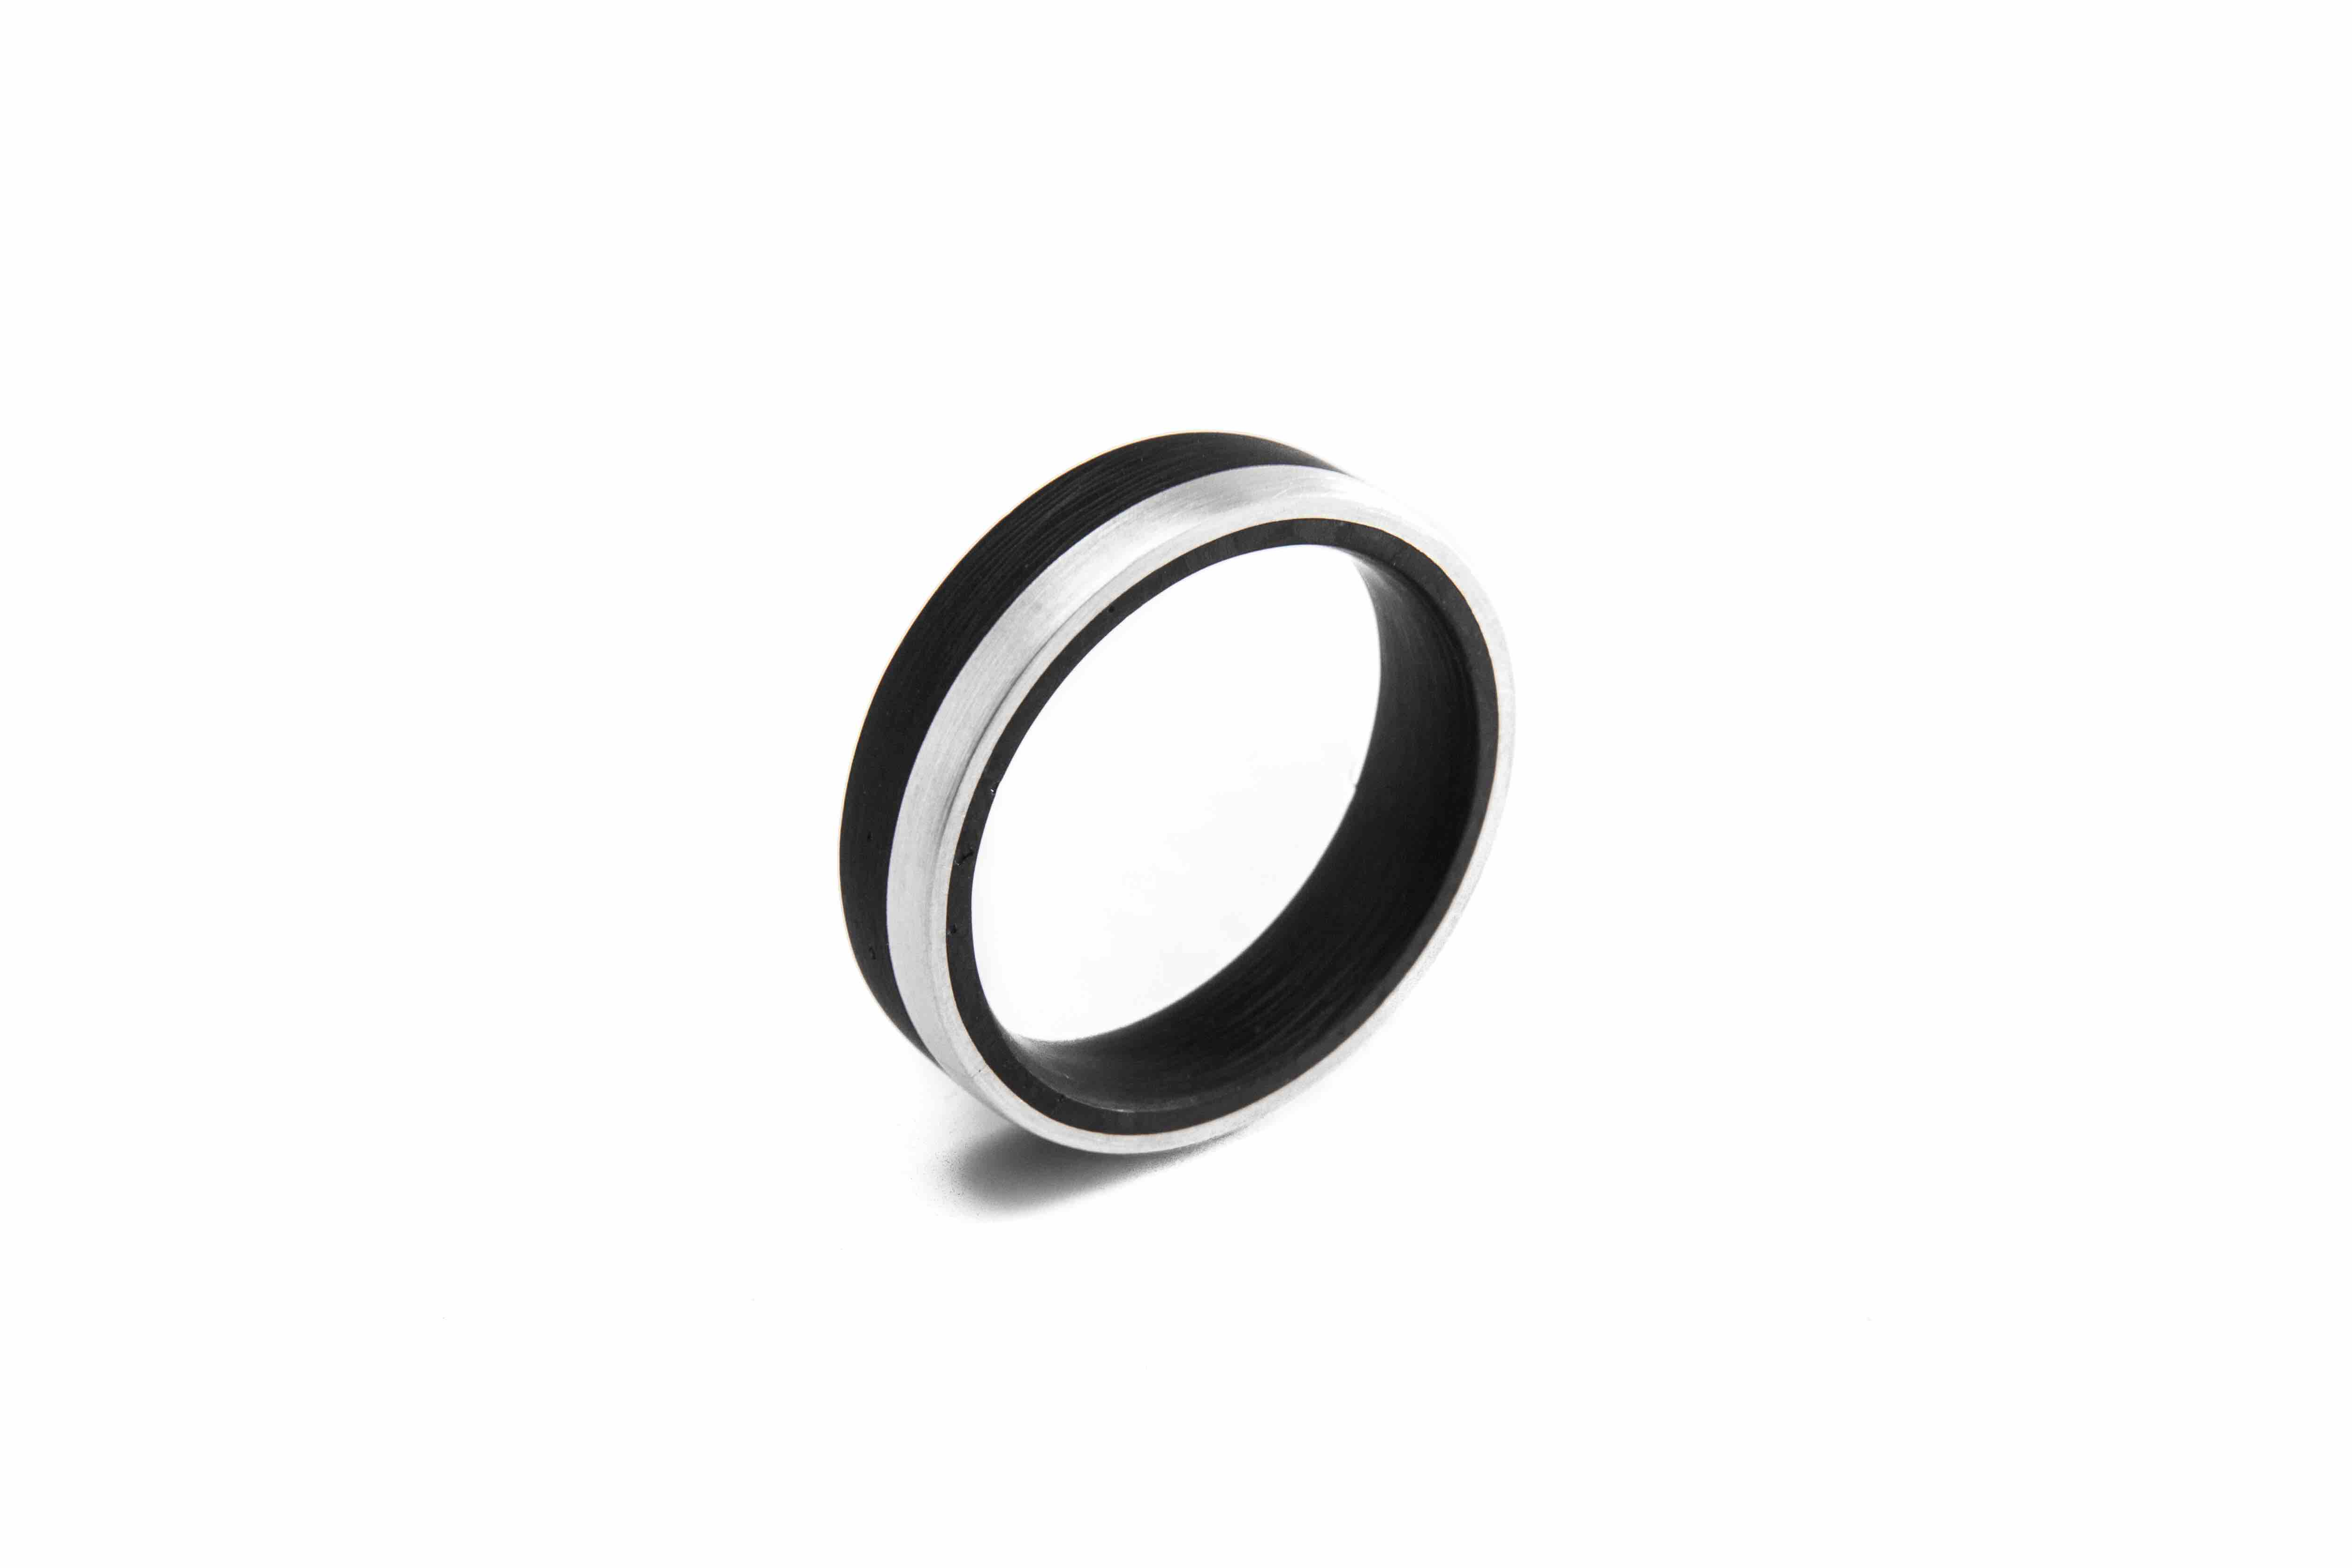 Machined Carbon Fibrewedding ring with fitted sterling silver inlay  Super light, Super strong, minimal contrasting elements.  This ring is 6mm wide though your personaliseddimensions are welcome.  Please let us knowyour ring size and required dimensions. Available in Matt or high polished finish.